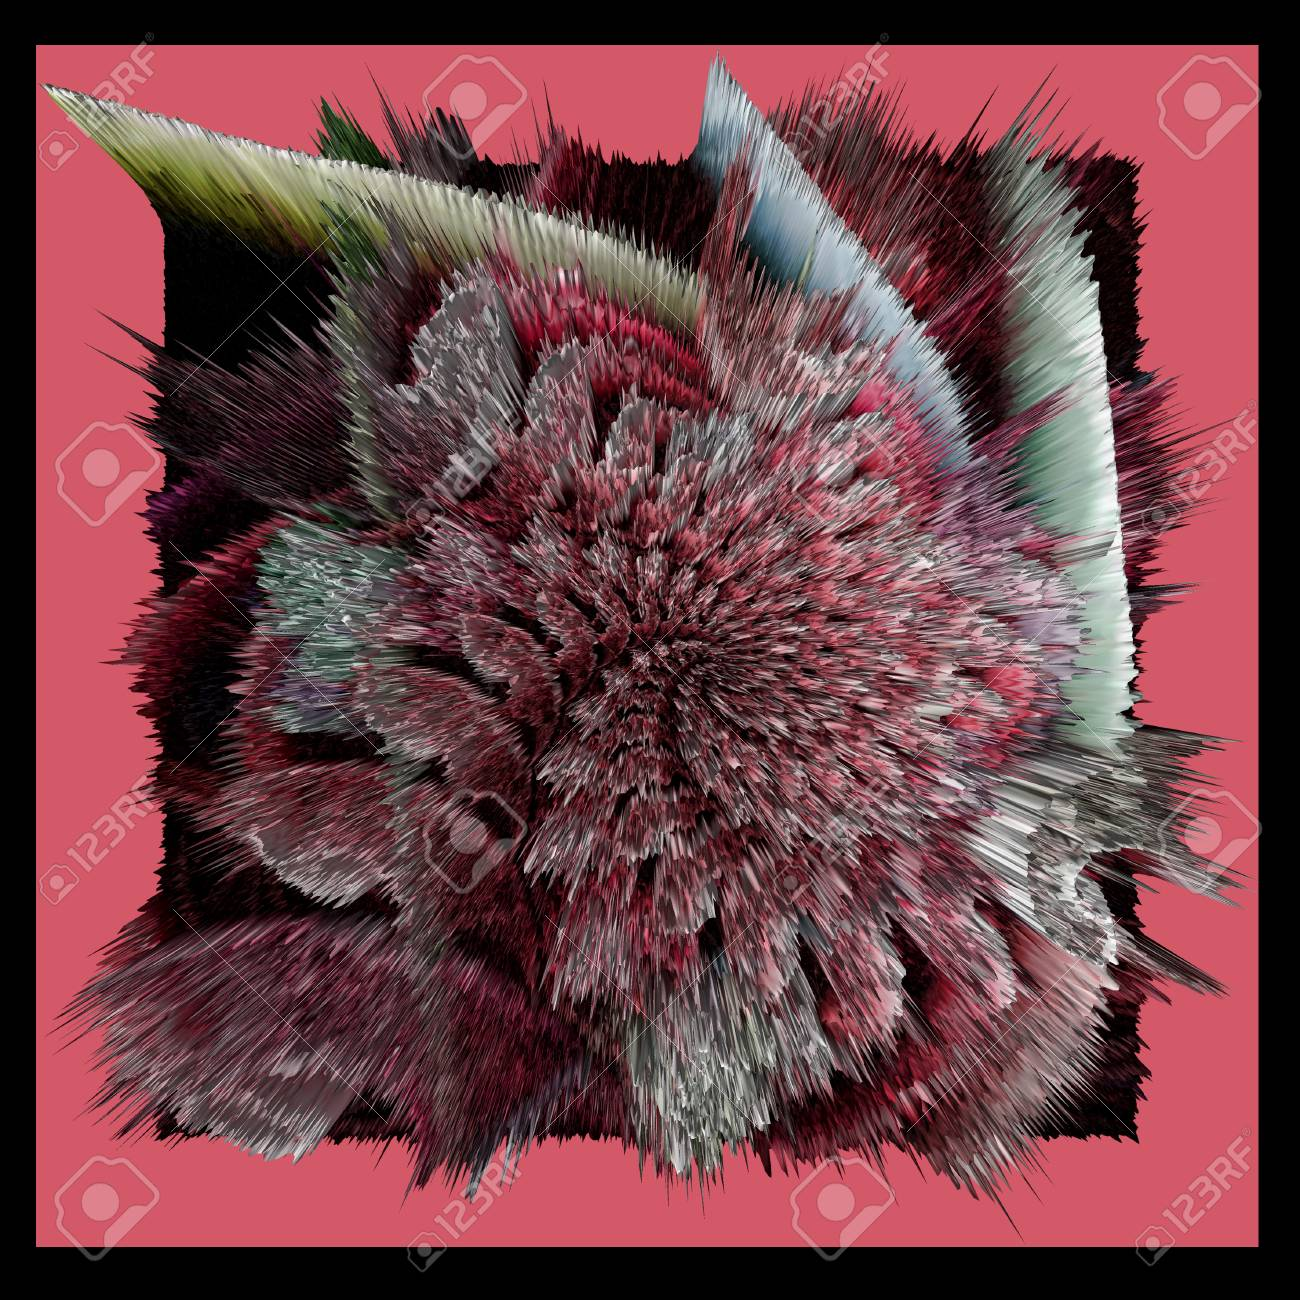 Abstract Flower In Black And Pink Shades On A Dark Pink Background